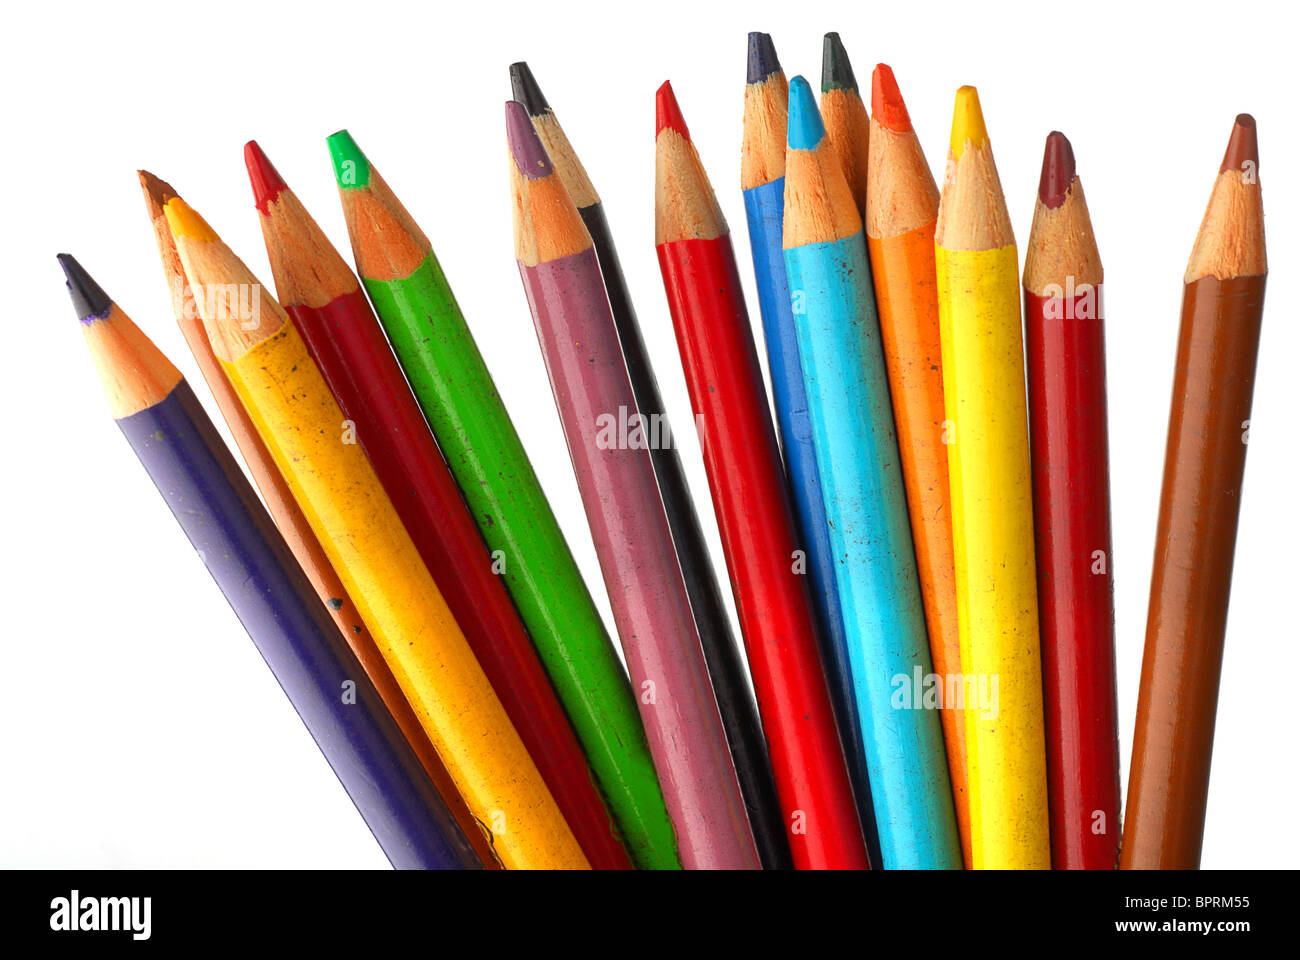 Close-up image of isolated crayons Photo Stock